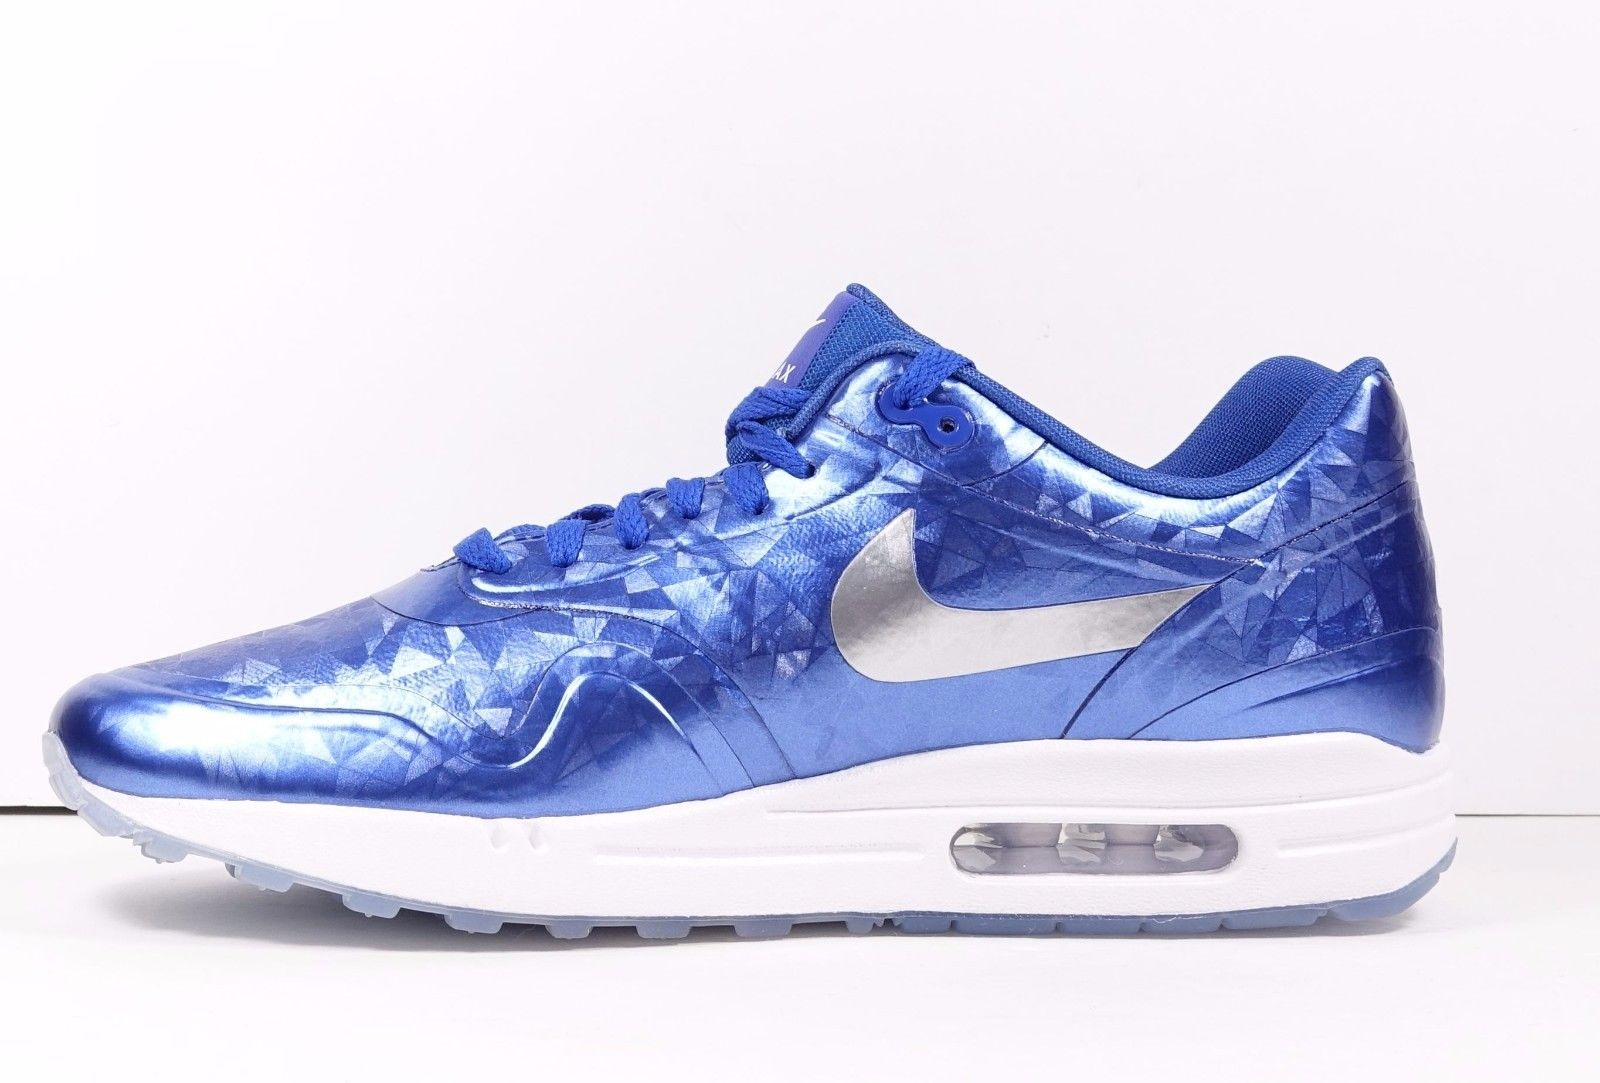 timeless design 2d2d0 5c74a Nike Air Max 1 ID Blue White Ice Sole Sz 10.5 Reflective Blue Silver White  New